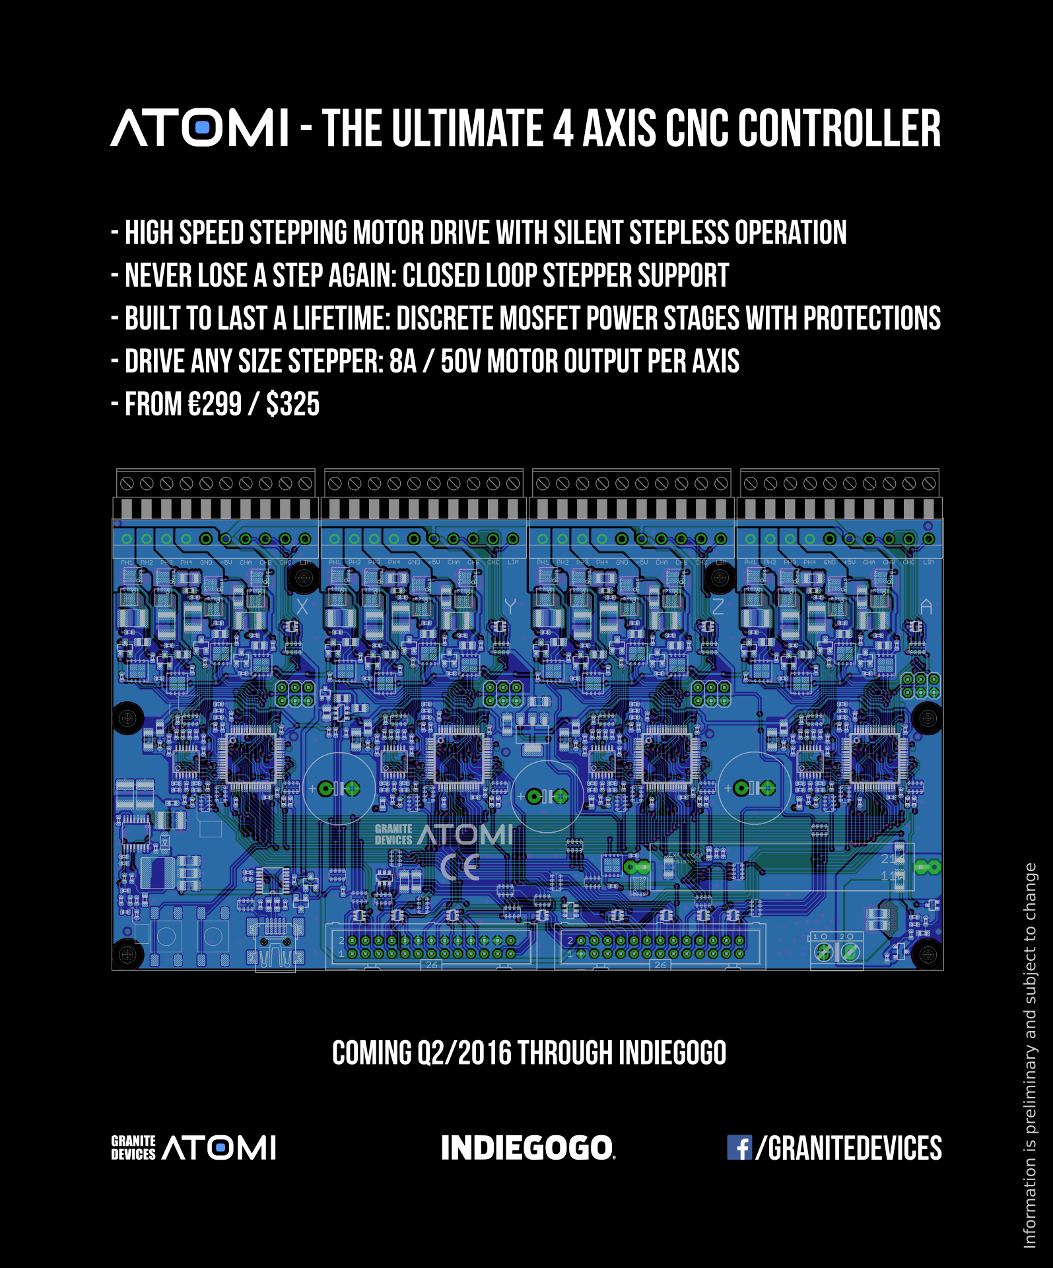 ATOMI - the ultimate 4 axis CNC controller - Servo drive